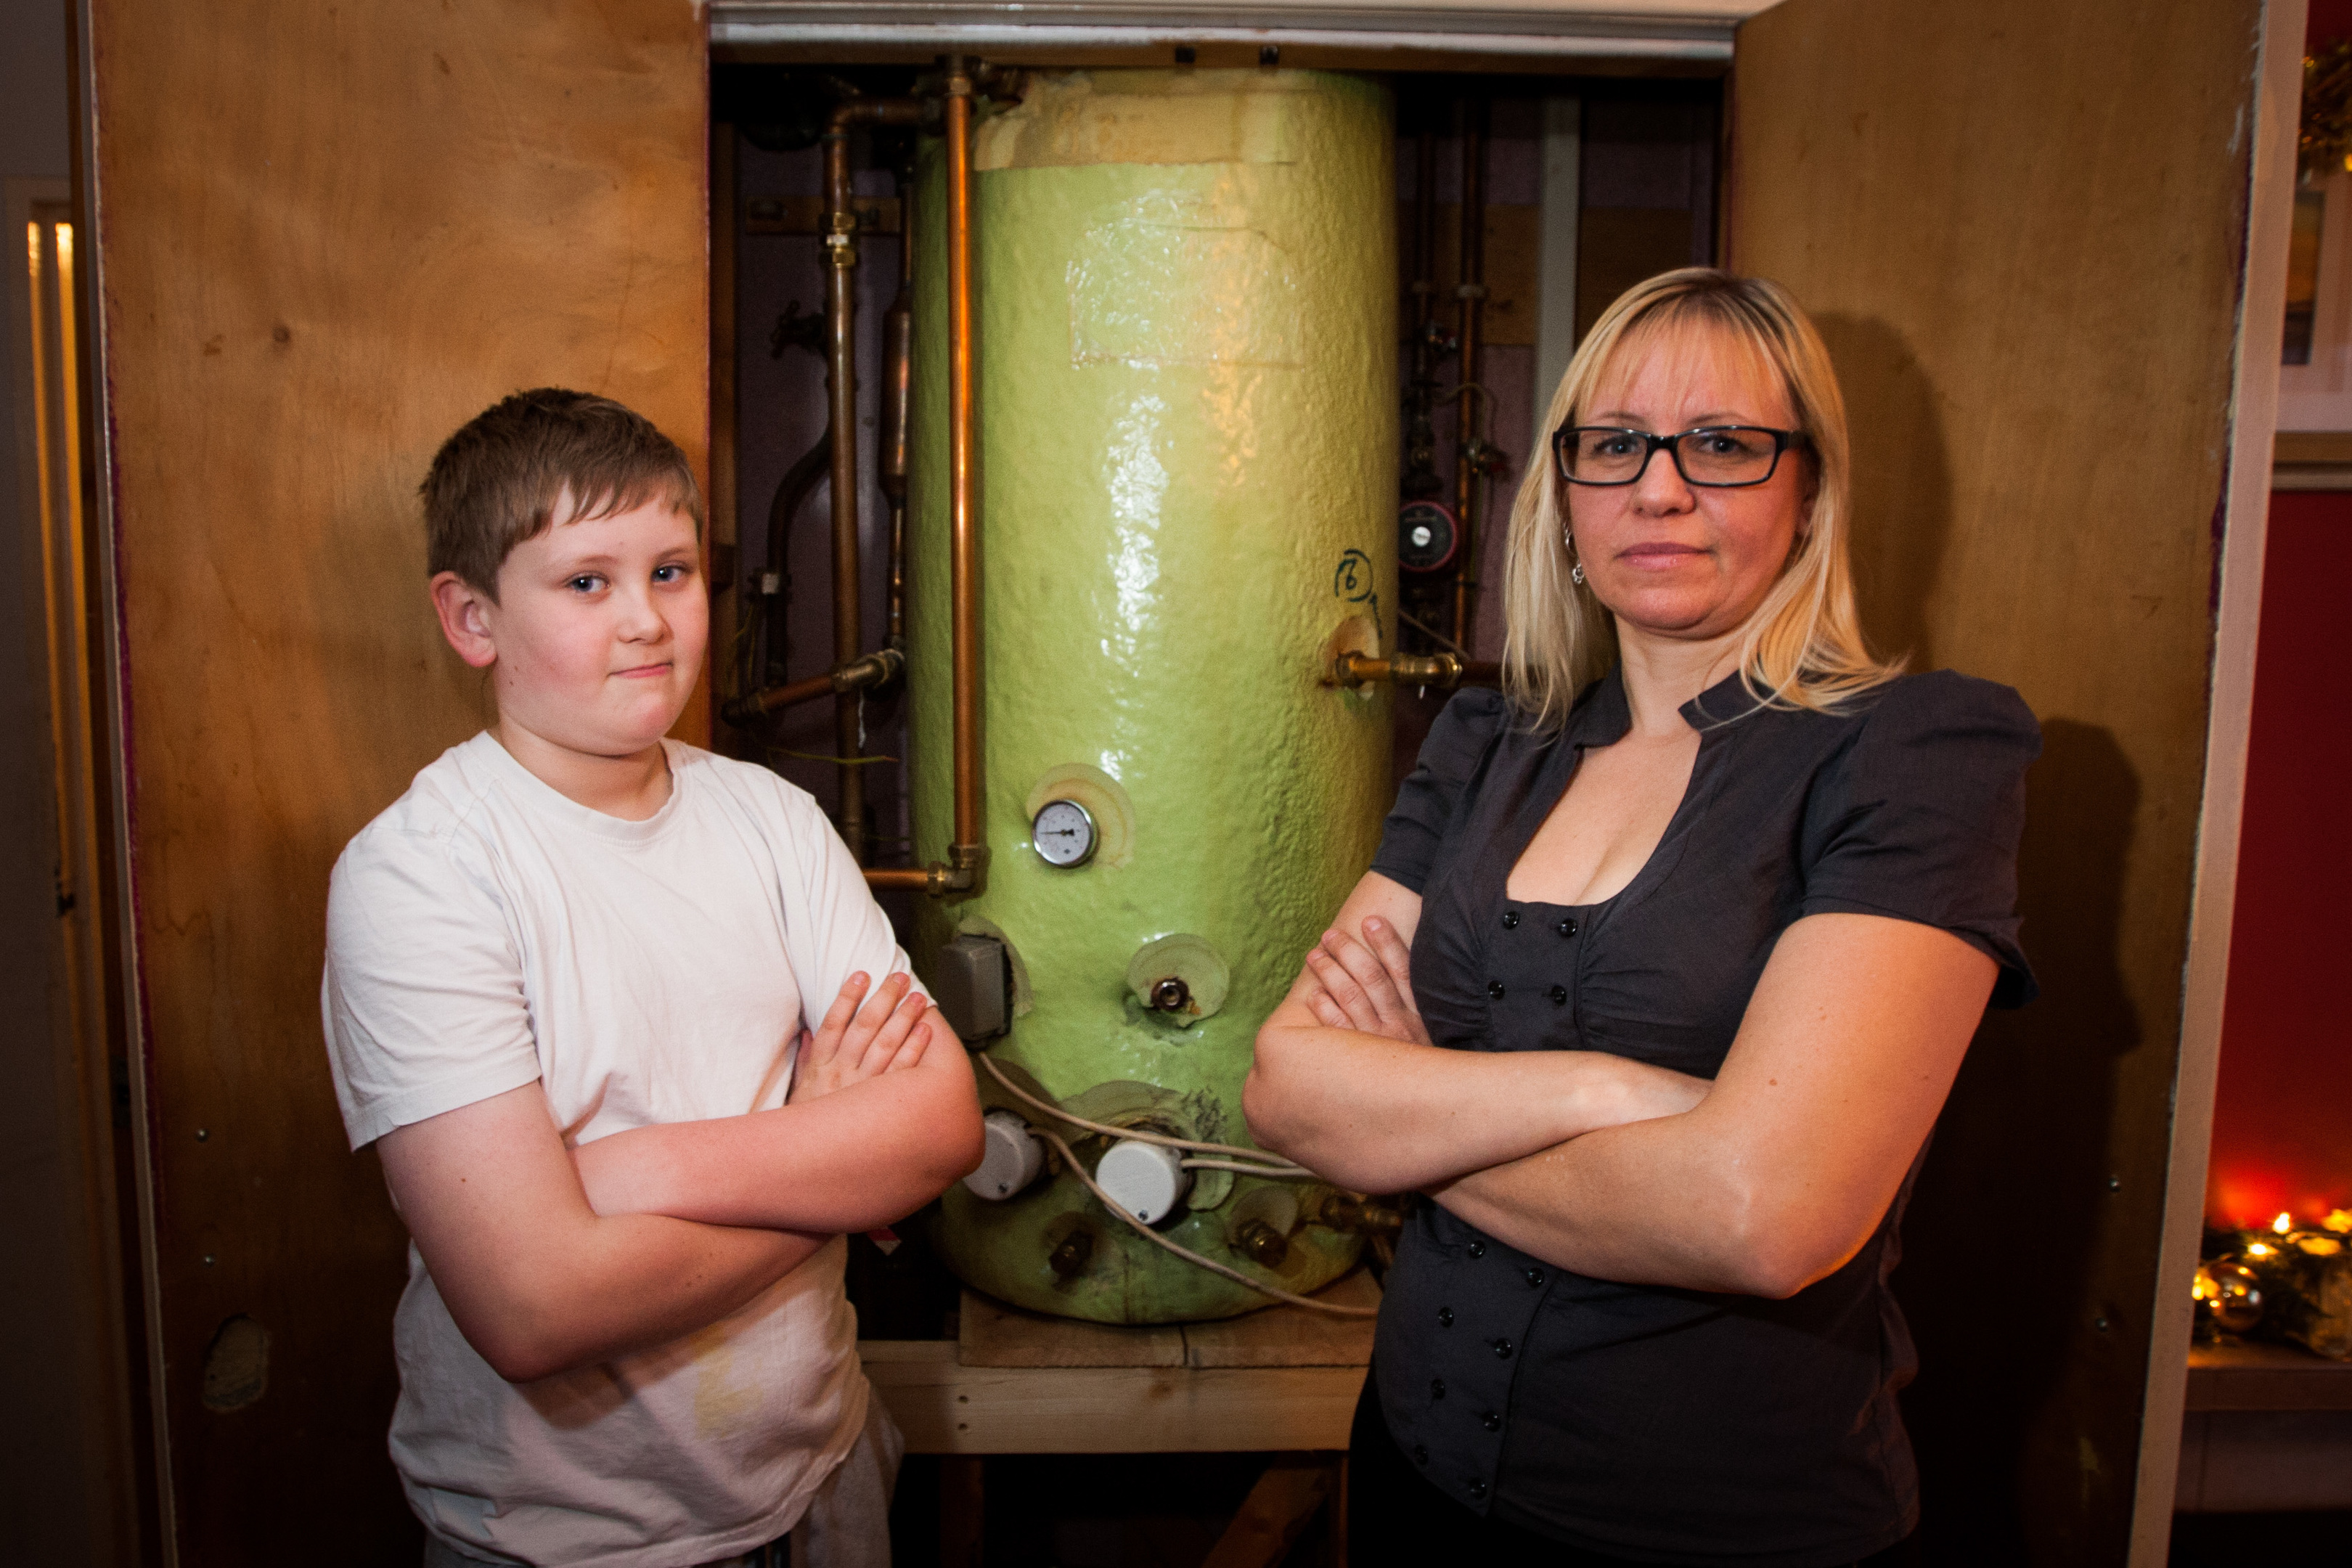 Nicola and Logan next to the faulty boiler